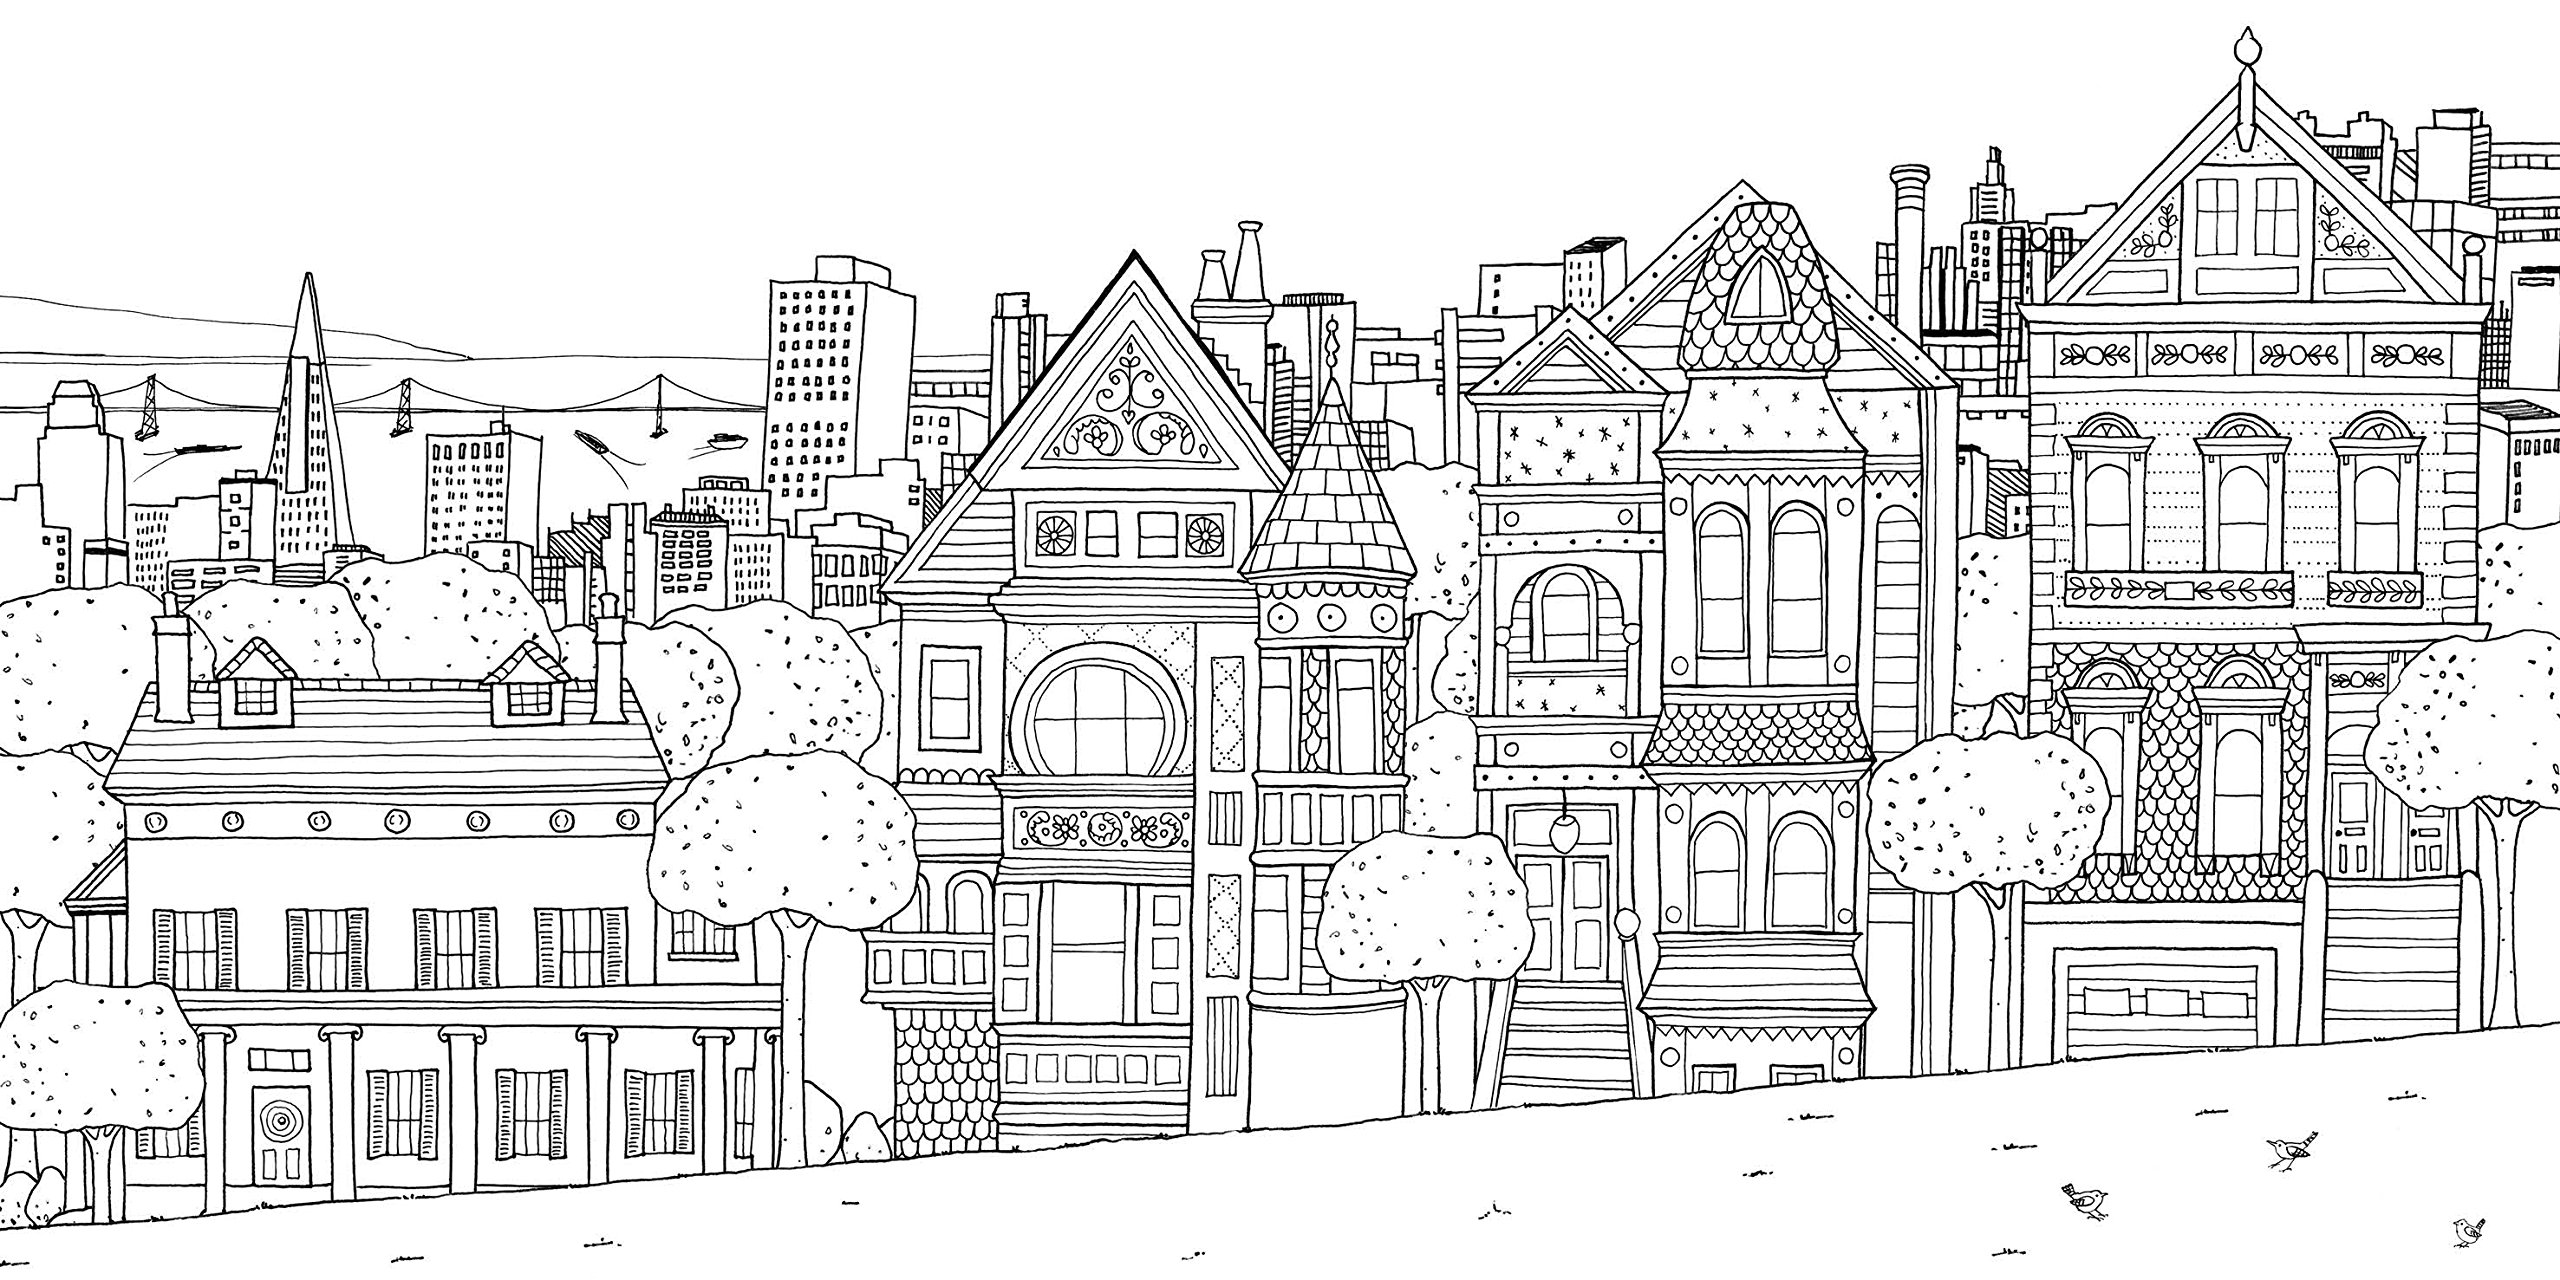 coloring page of houses in san francisco usa - Coloring Pages Of Houses